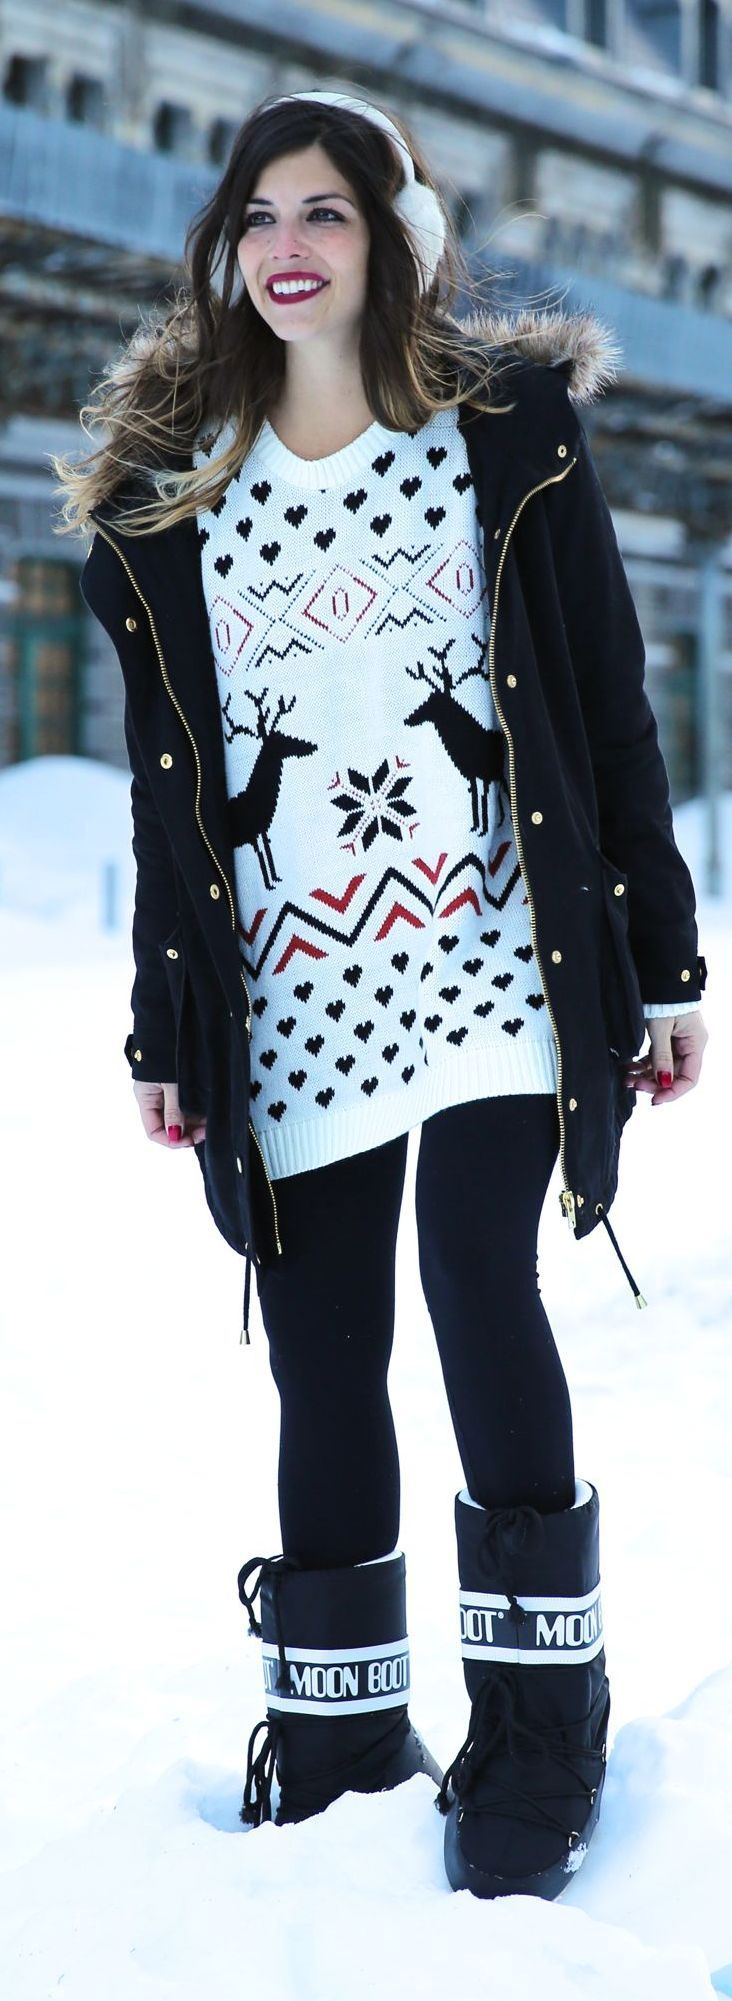 Snow Time Sweater by TrendyTaste | Winter outfit ...